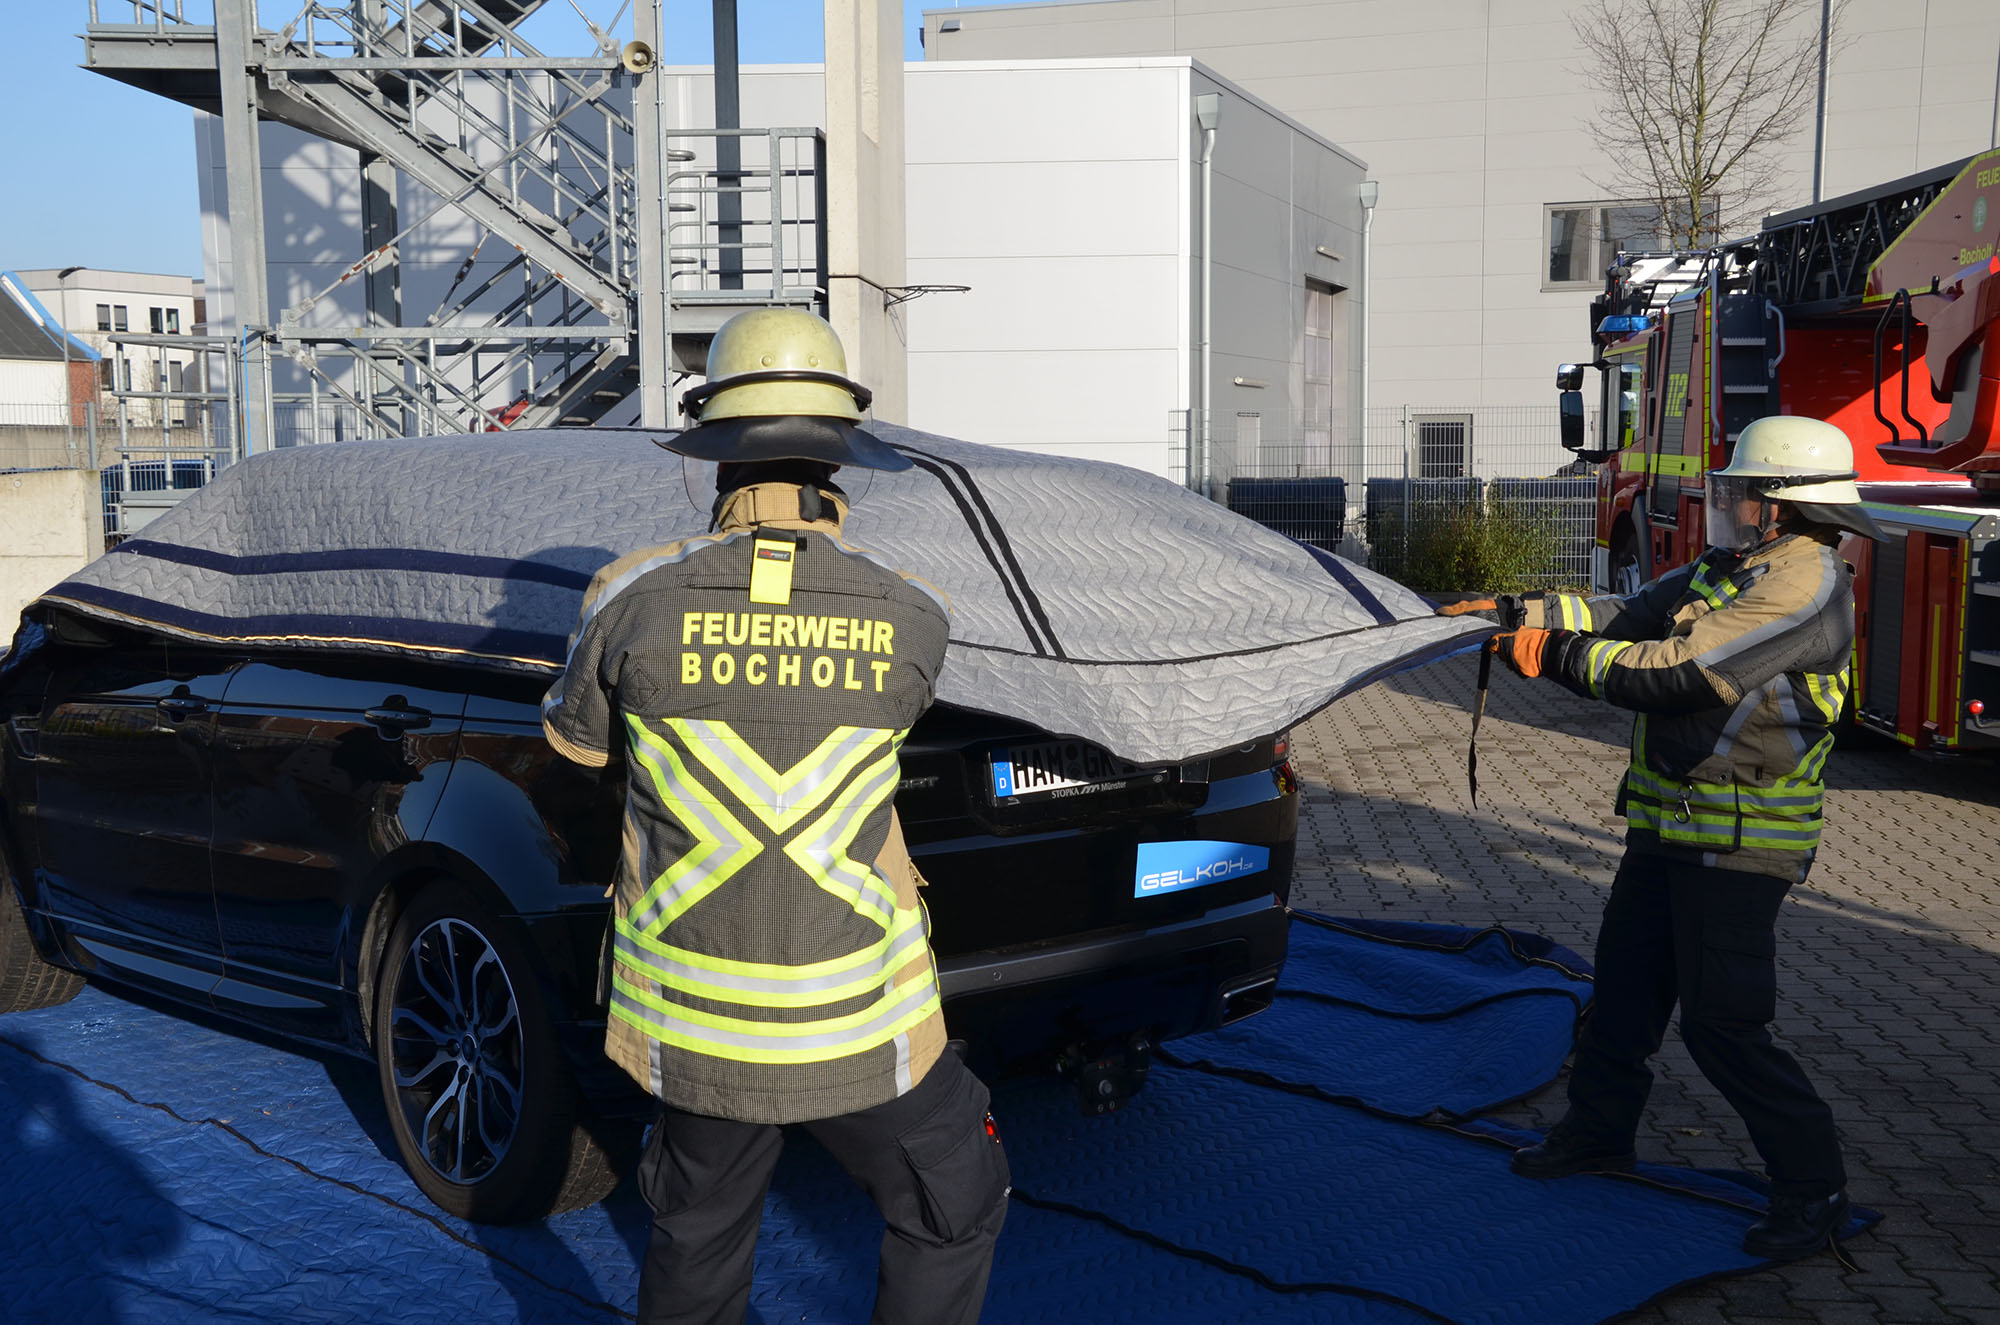 Löschdecke Test Ibena Develops Fire Protection Blanket For Electric Cars And Ebikes - Ibena Protect